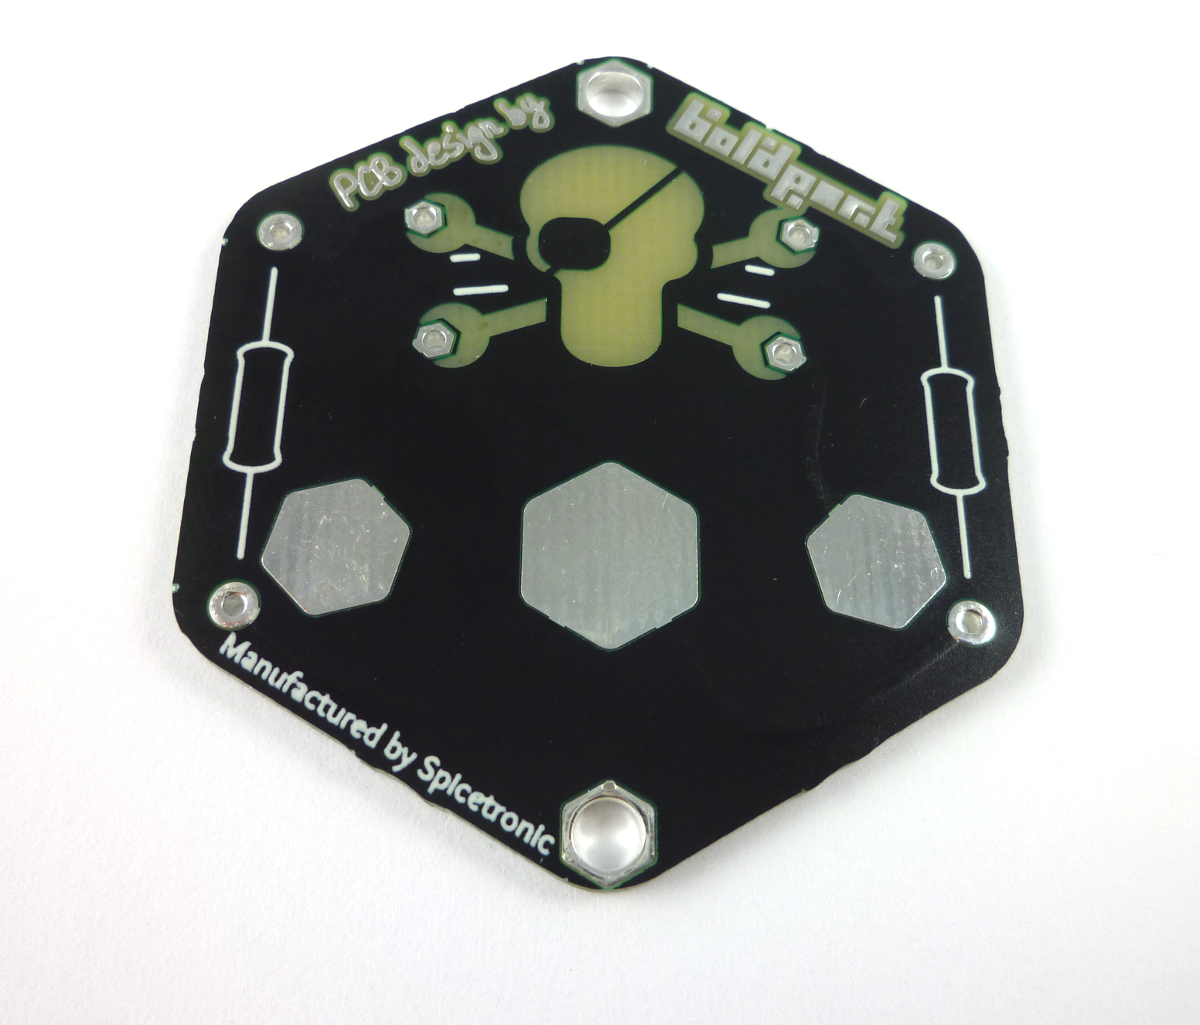 Back of the badge -- the three large pads are for a battery holder